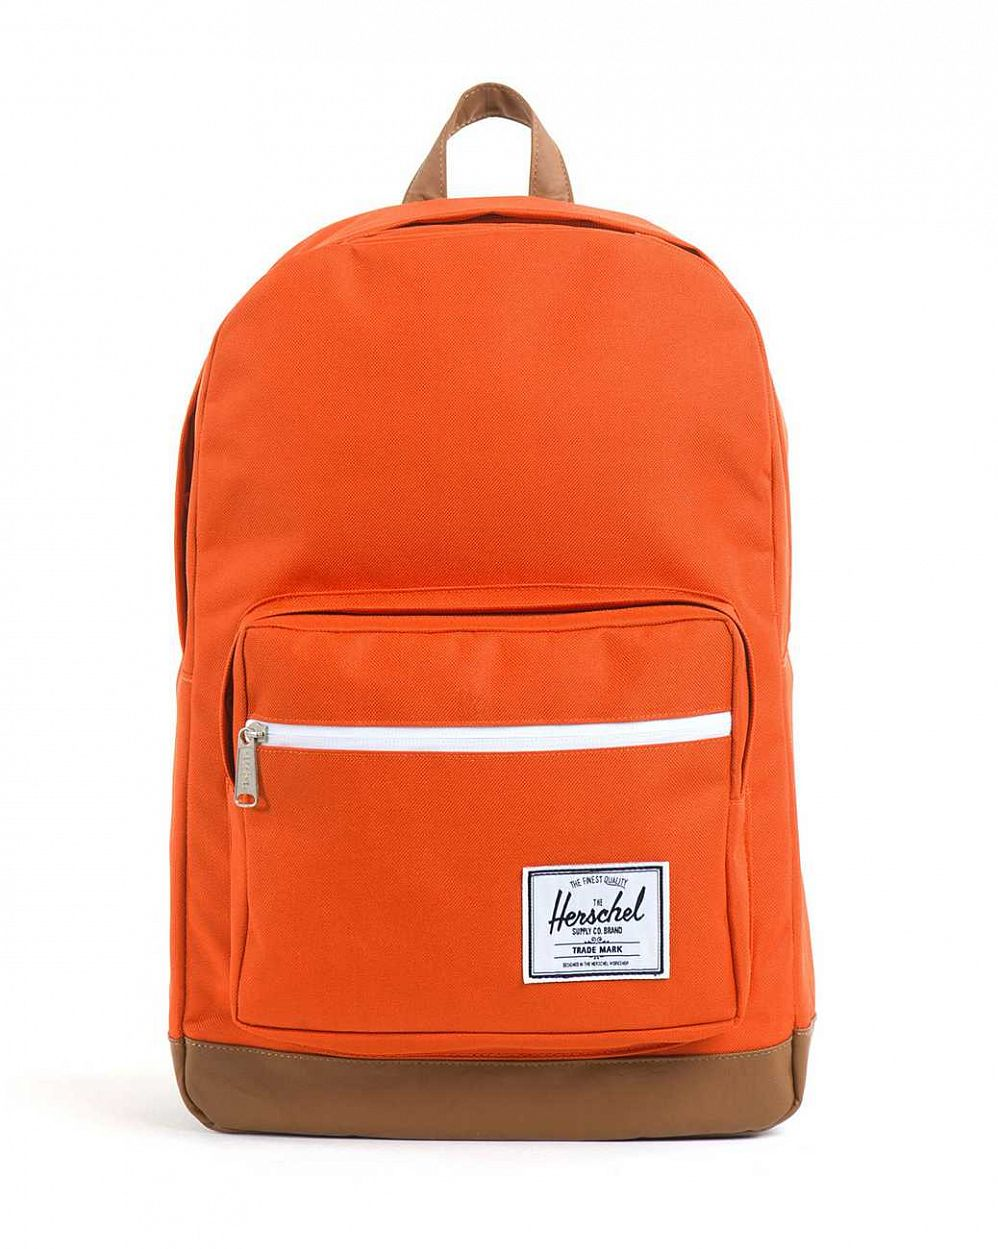 Рюкзак Herschel Pop Quiz Camper Orange (10011) отзывы